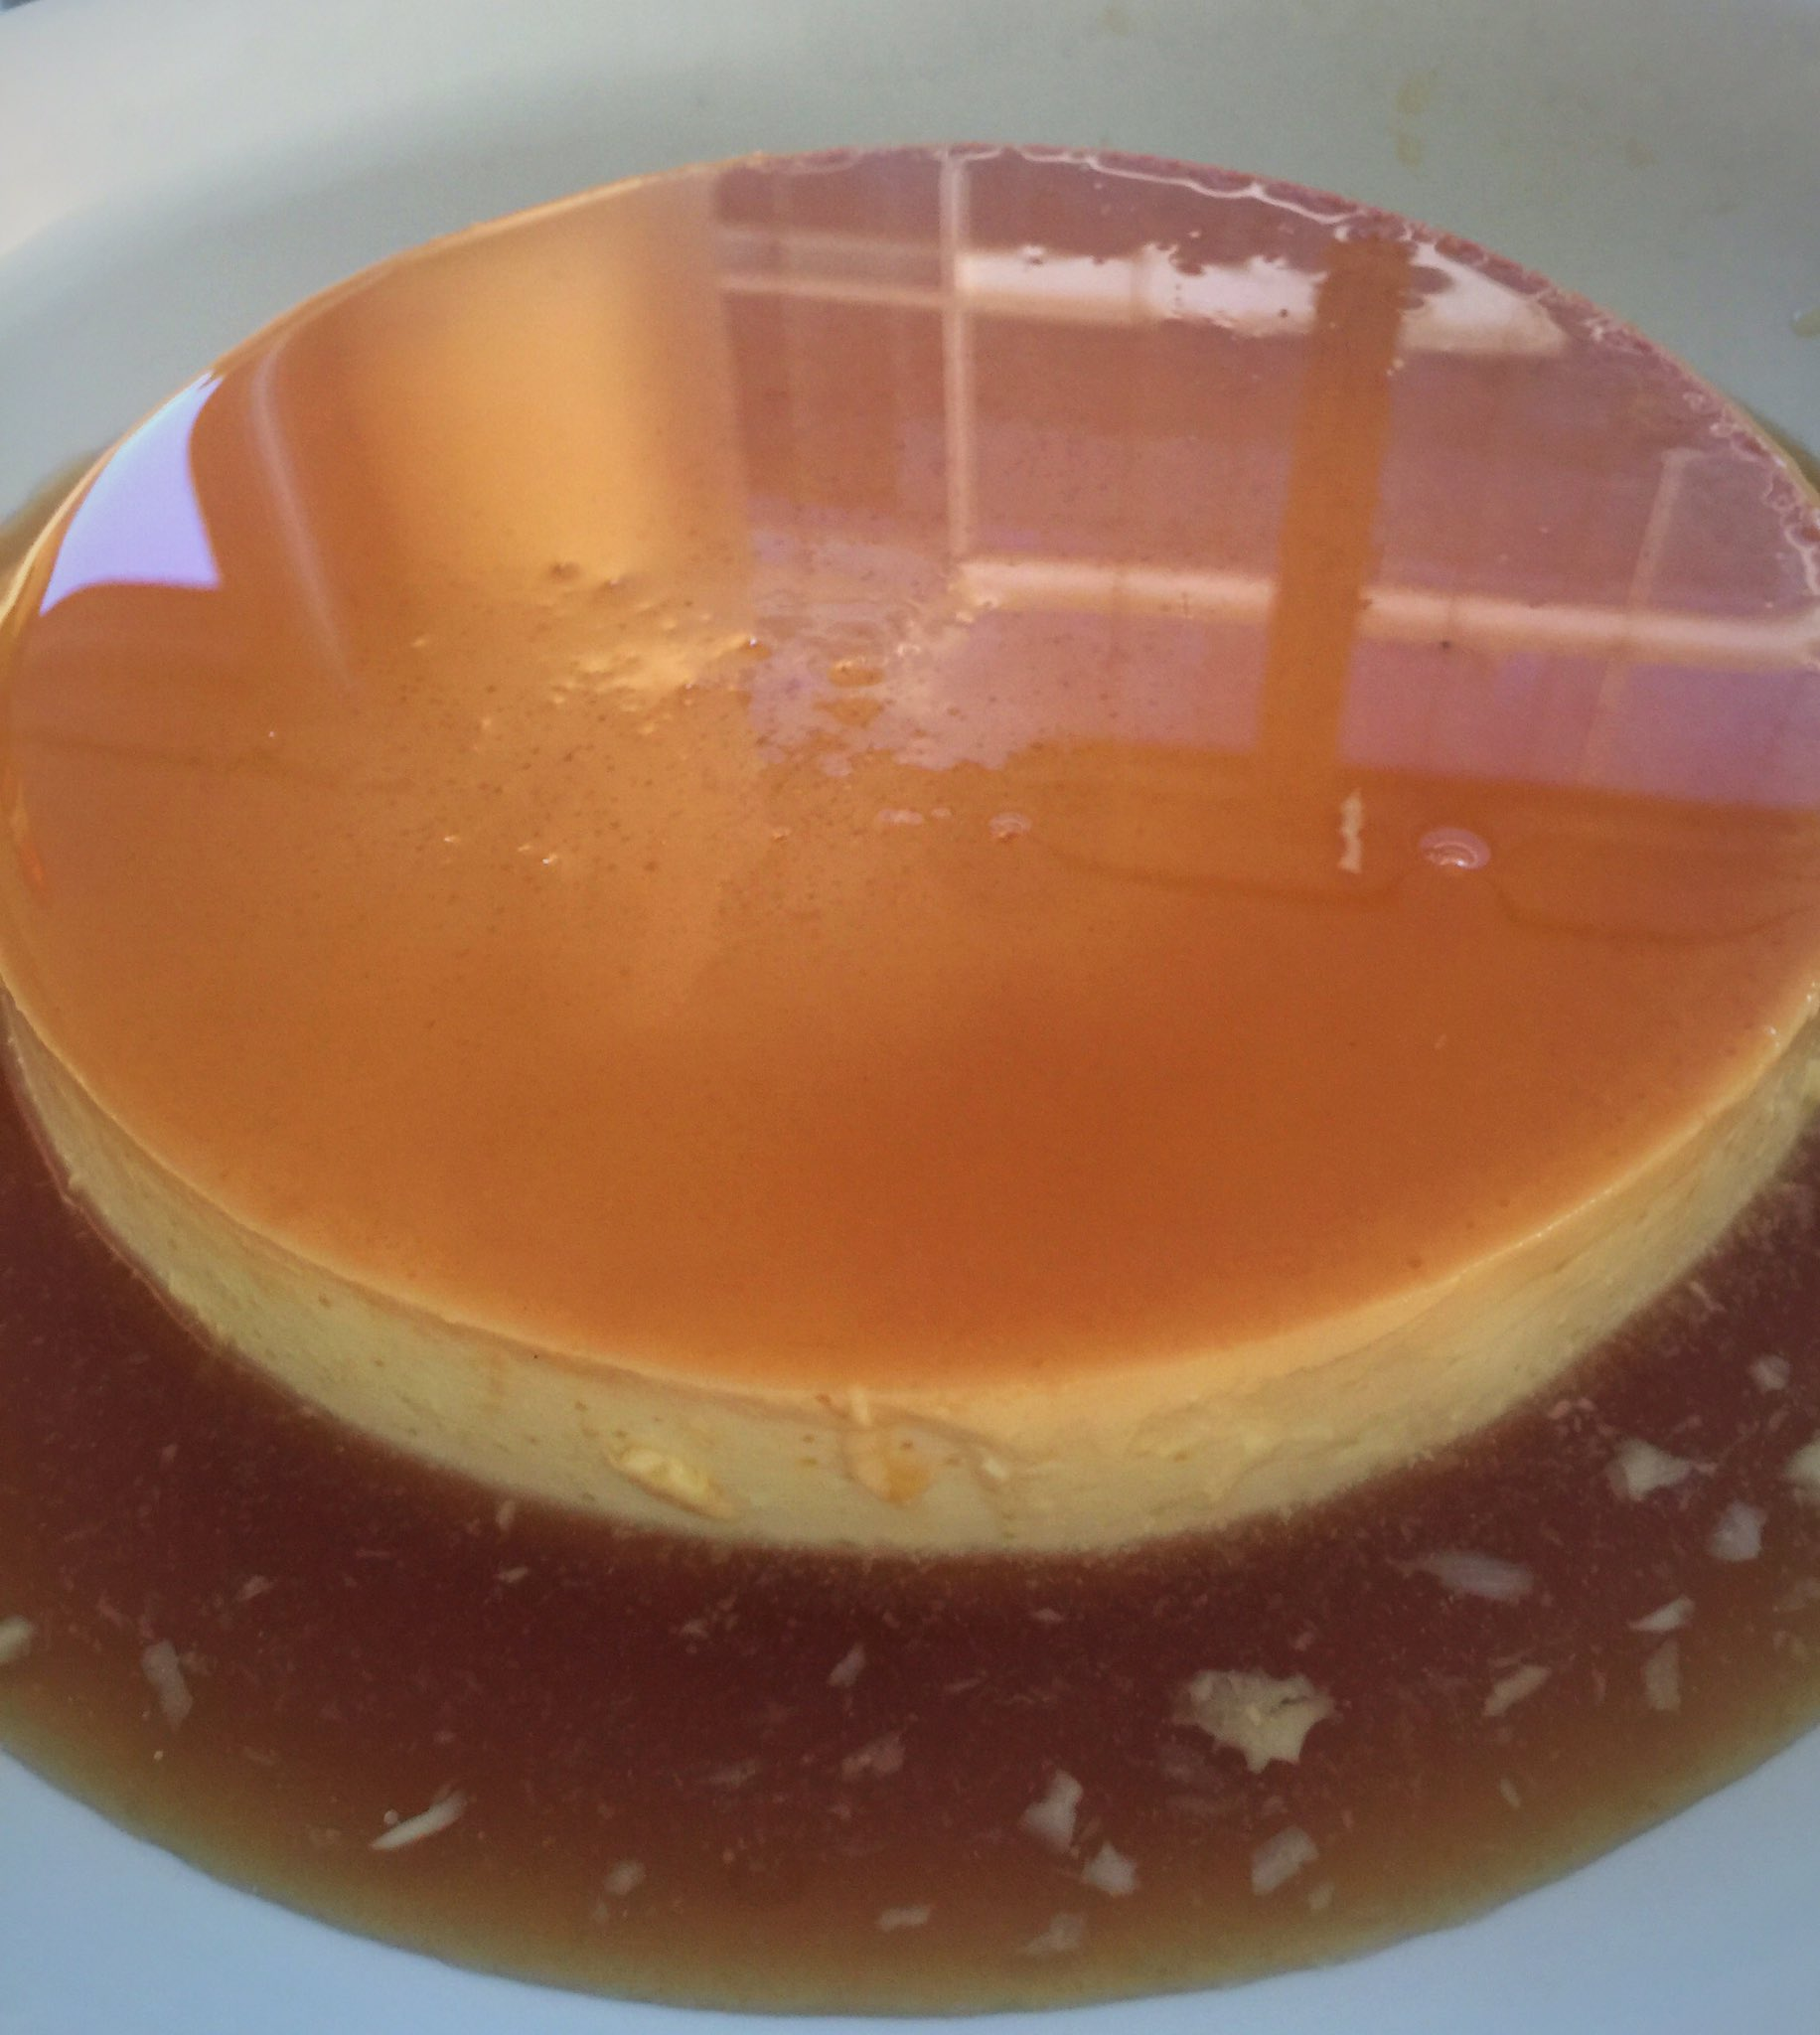 The result of Mum's Creme Caramel. https://t.co/VNYSNhocrS